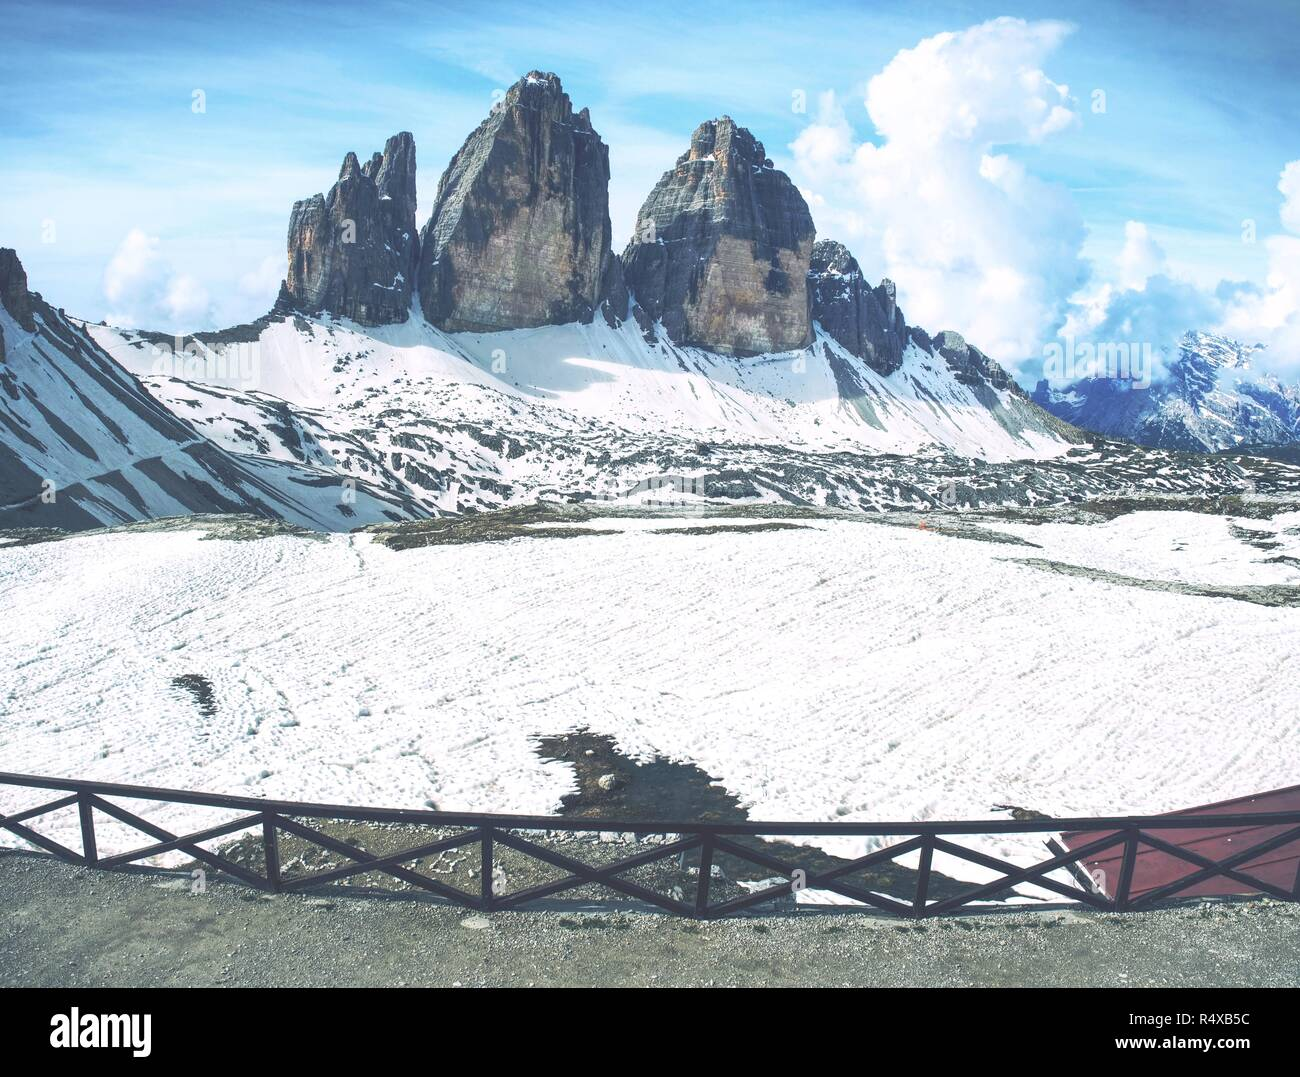 Magnificent view from terrace to symbol of Dolomite Alps - Tre Cime.  View from mountain hut with high rocky ridge in clouds on background. - Stock Image